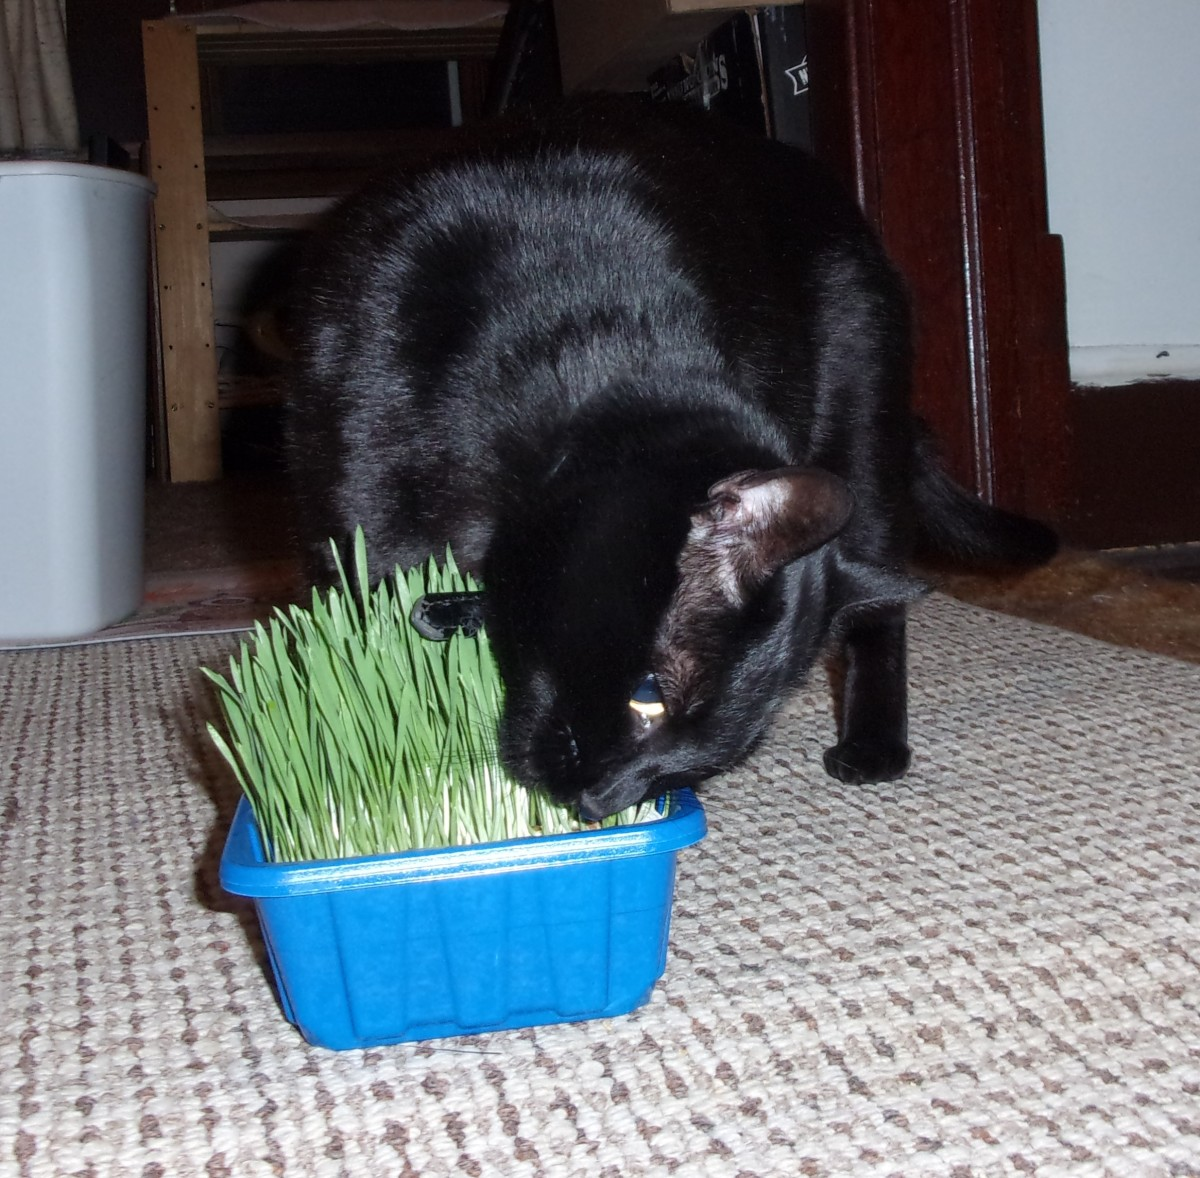 Lucy comes running when a fresh batch of wheat grass is ready.